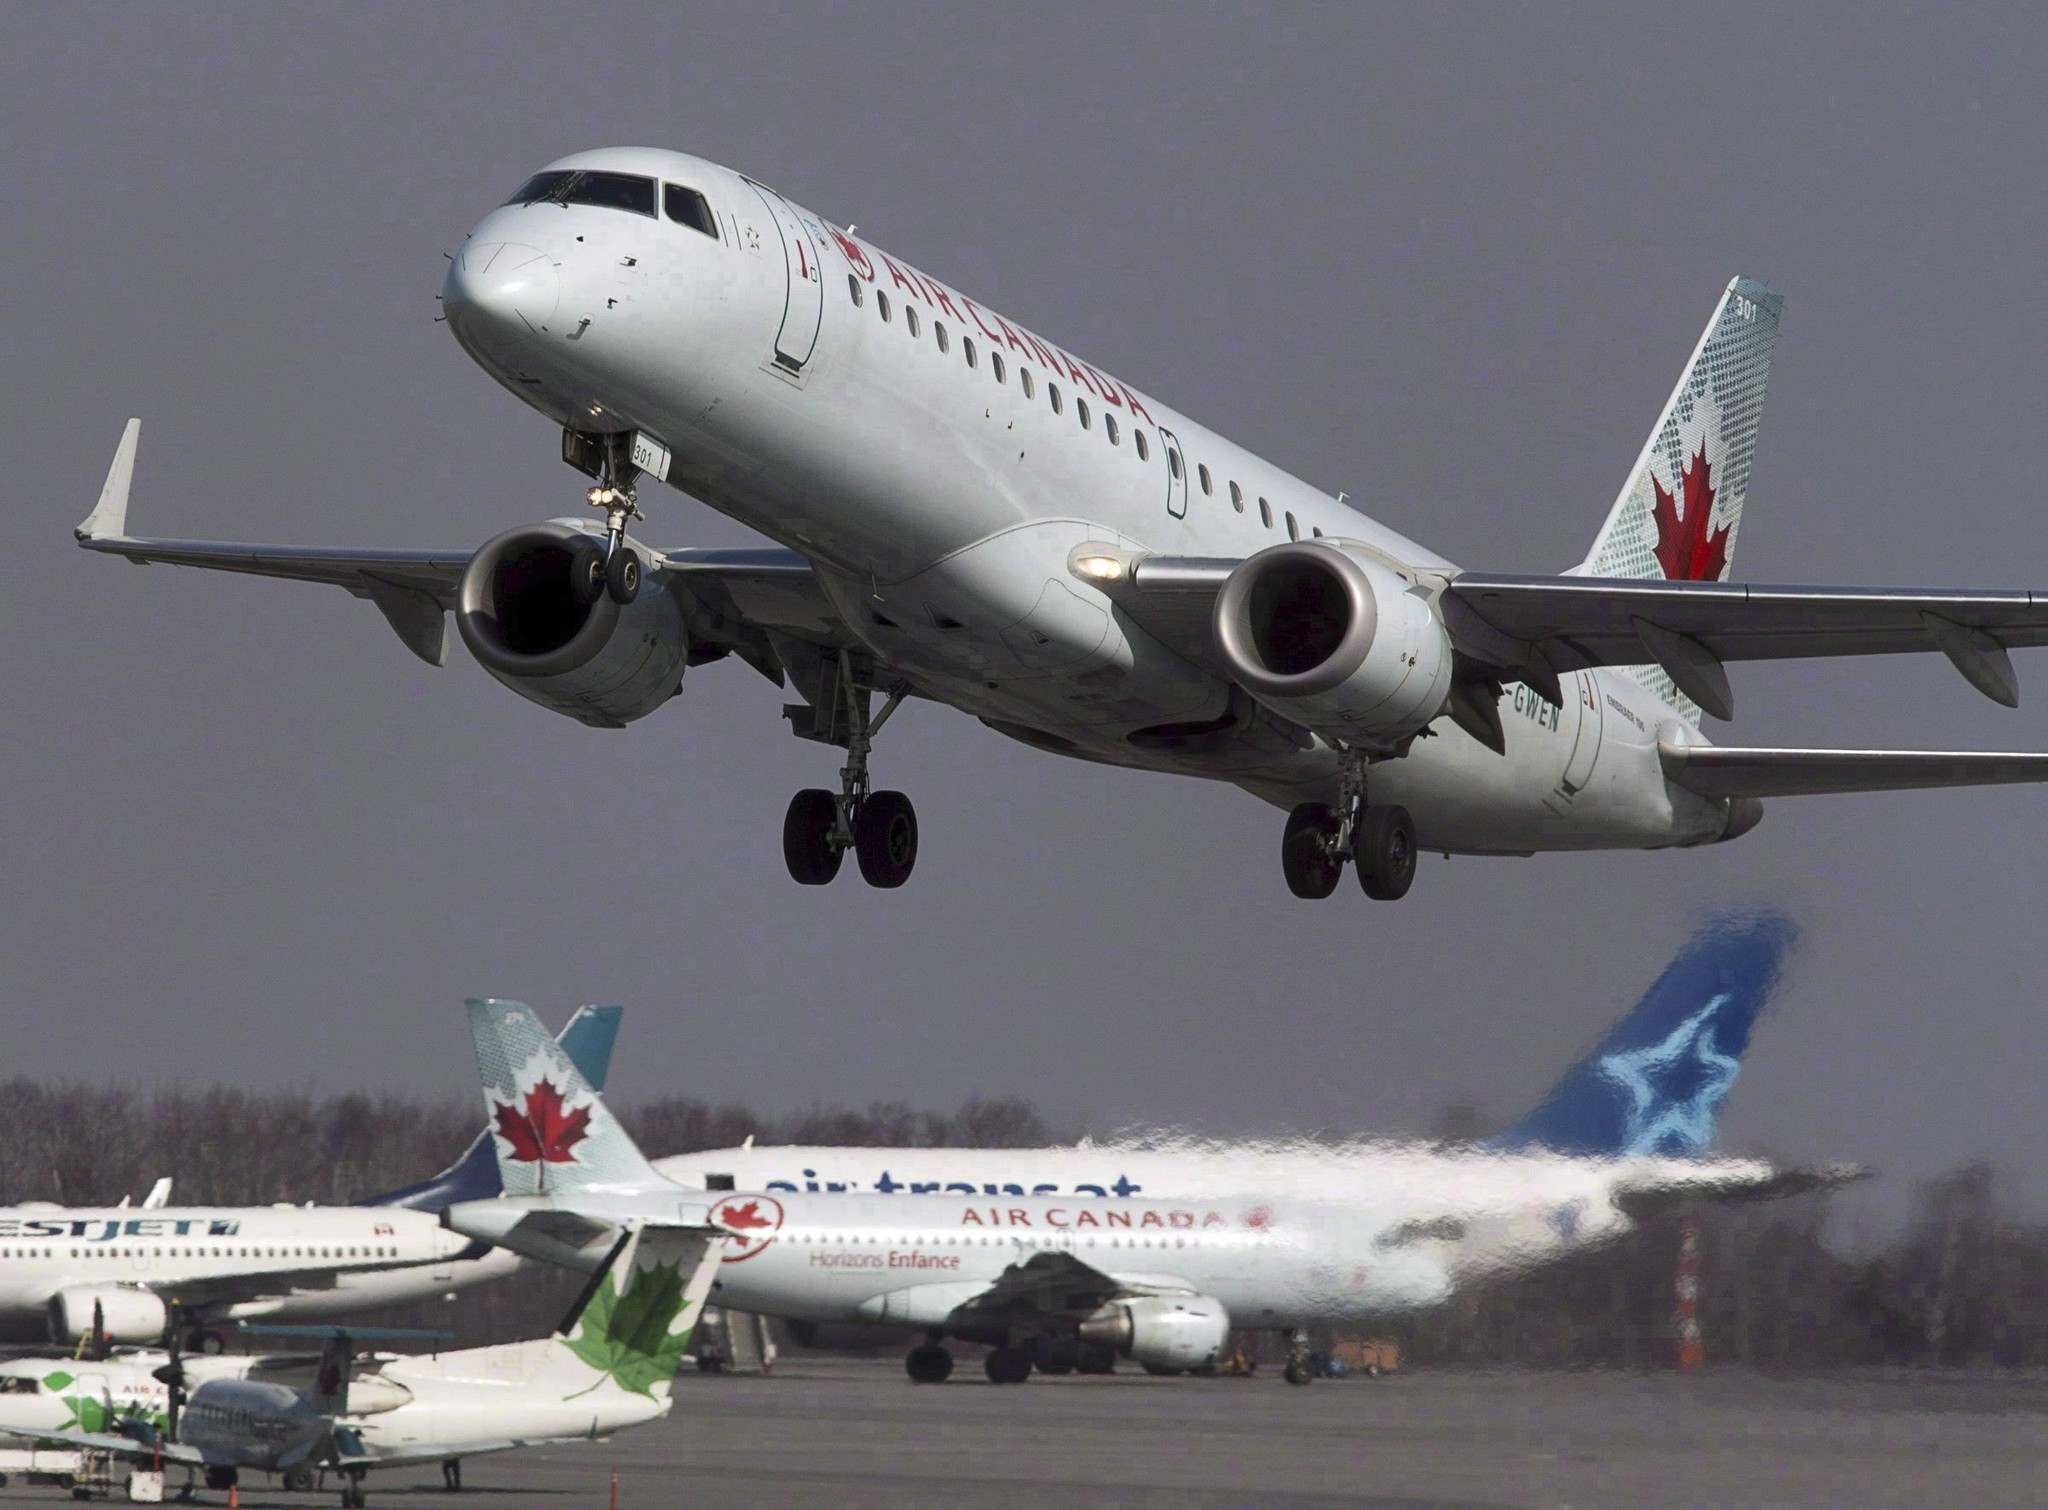 ANDREW VAUGHAN / THE CANADIAN PRESS FILES</p><p>Air Canada said Thursday it has signed agreements with three of its key suppliers to help them create a Western Canada Centre of Excellence for aircraft maintenance work in Manitoba.</p>